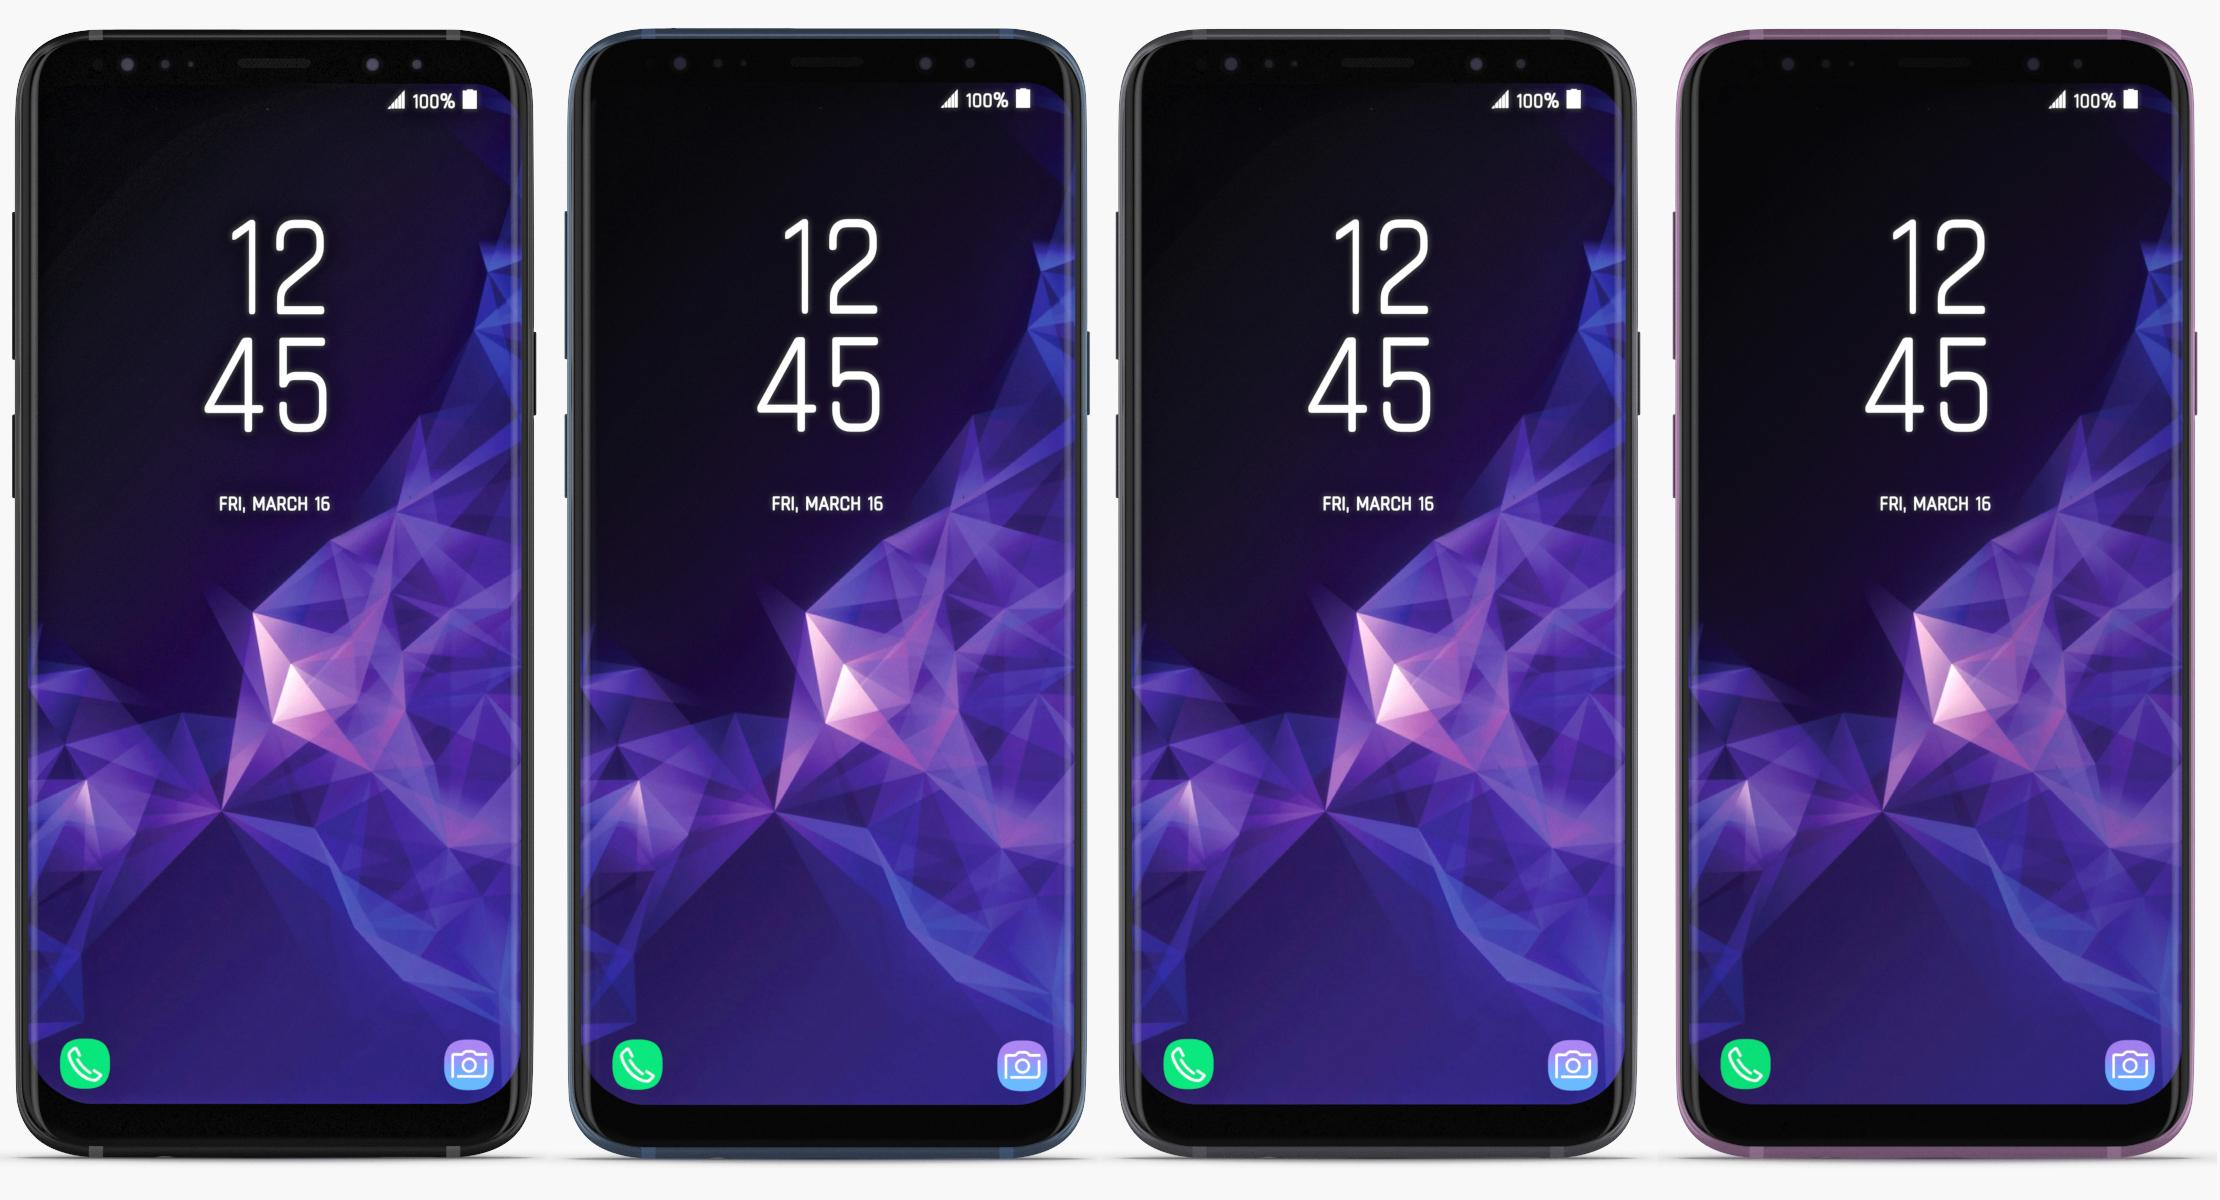 Samsung Galaxy S9 & S9+ (ALL COLORS) - reel 1